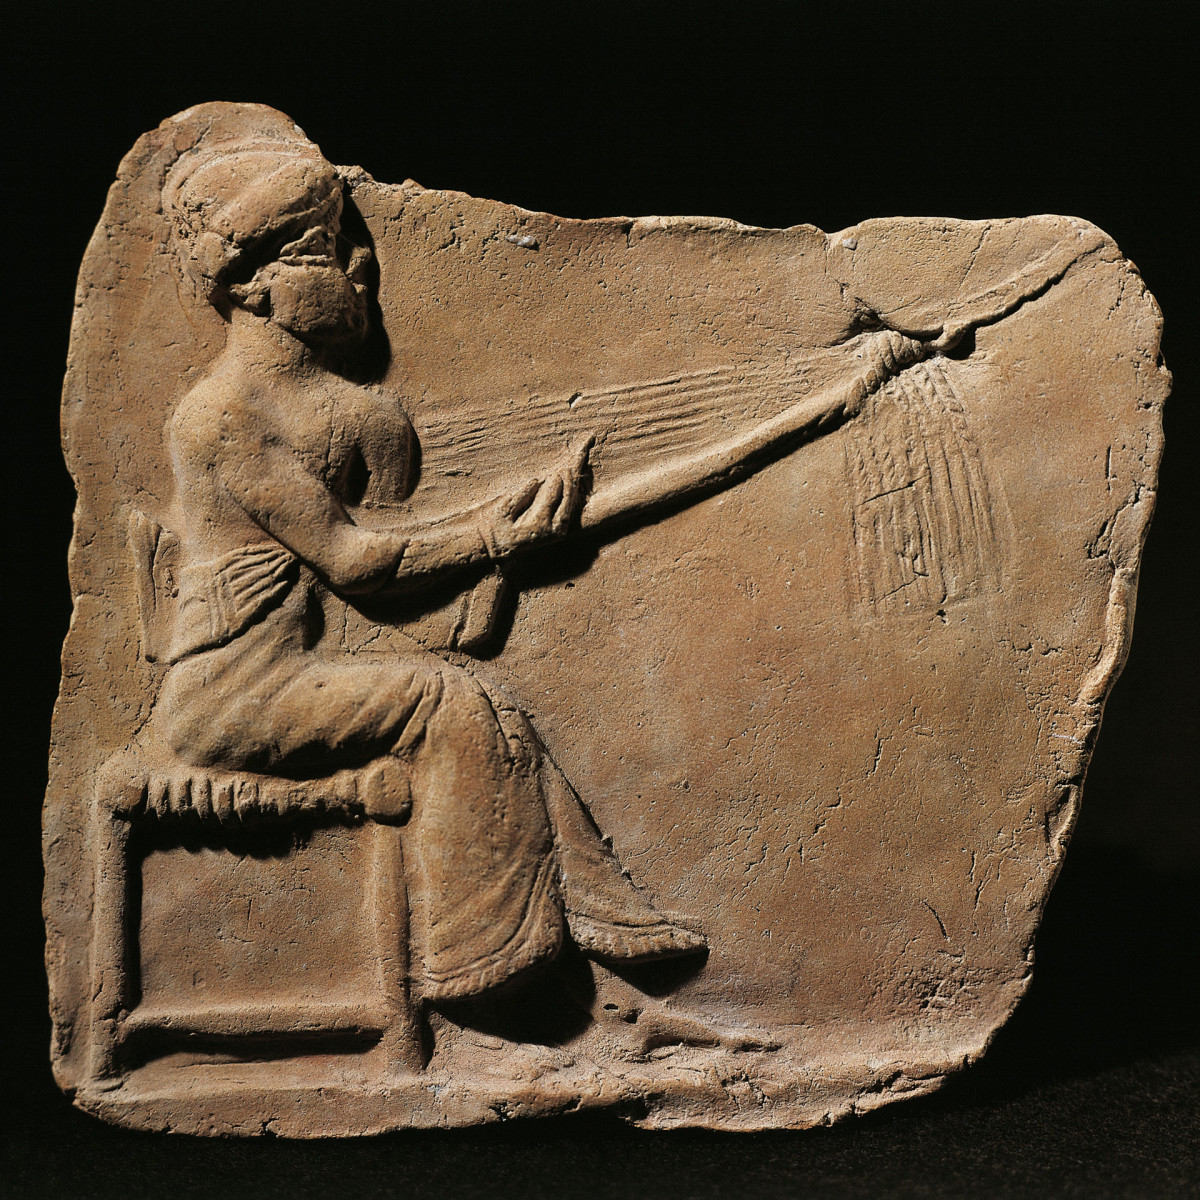 9 Ancient Sumerian Inventions That Changed the World - HISTORY